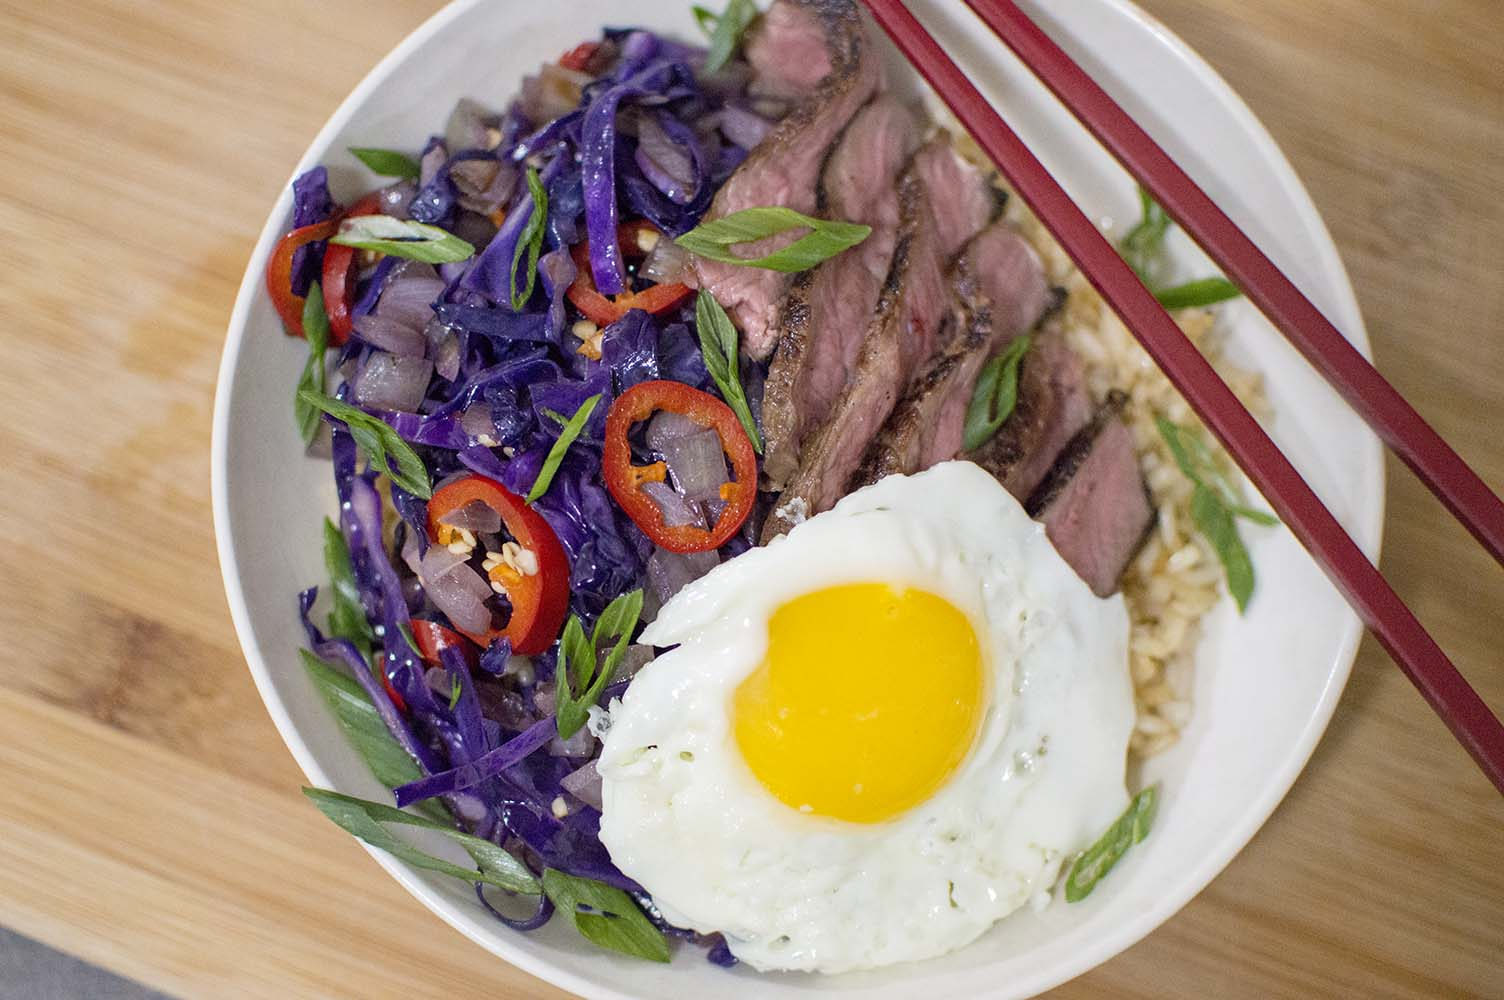 Garlic Fried Rice with Steak served and ready to eat